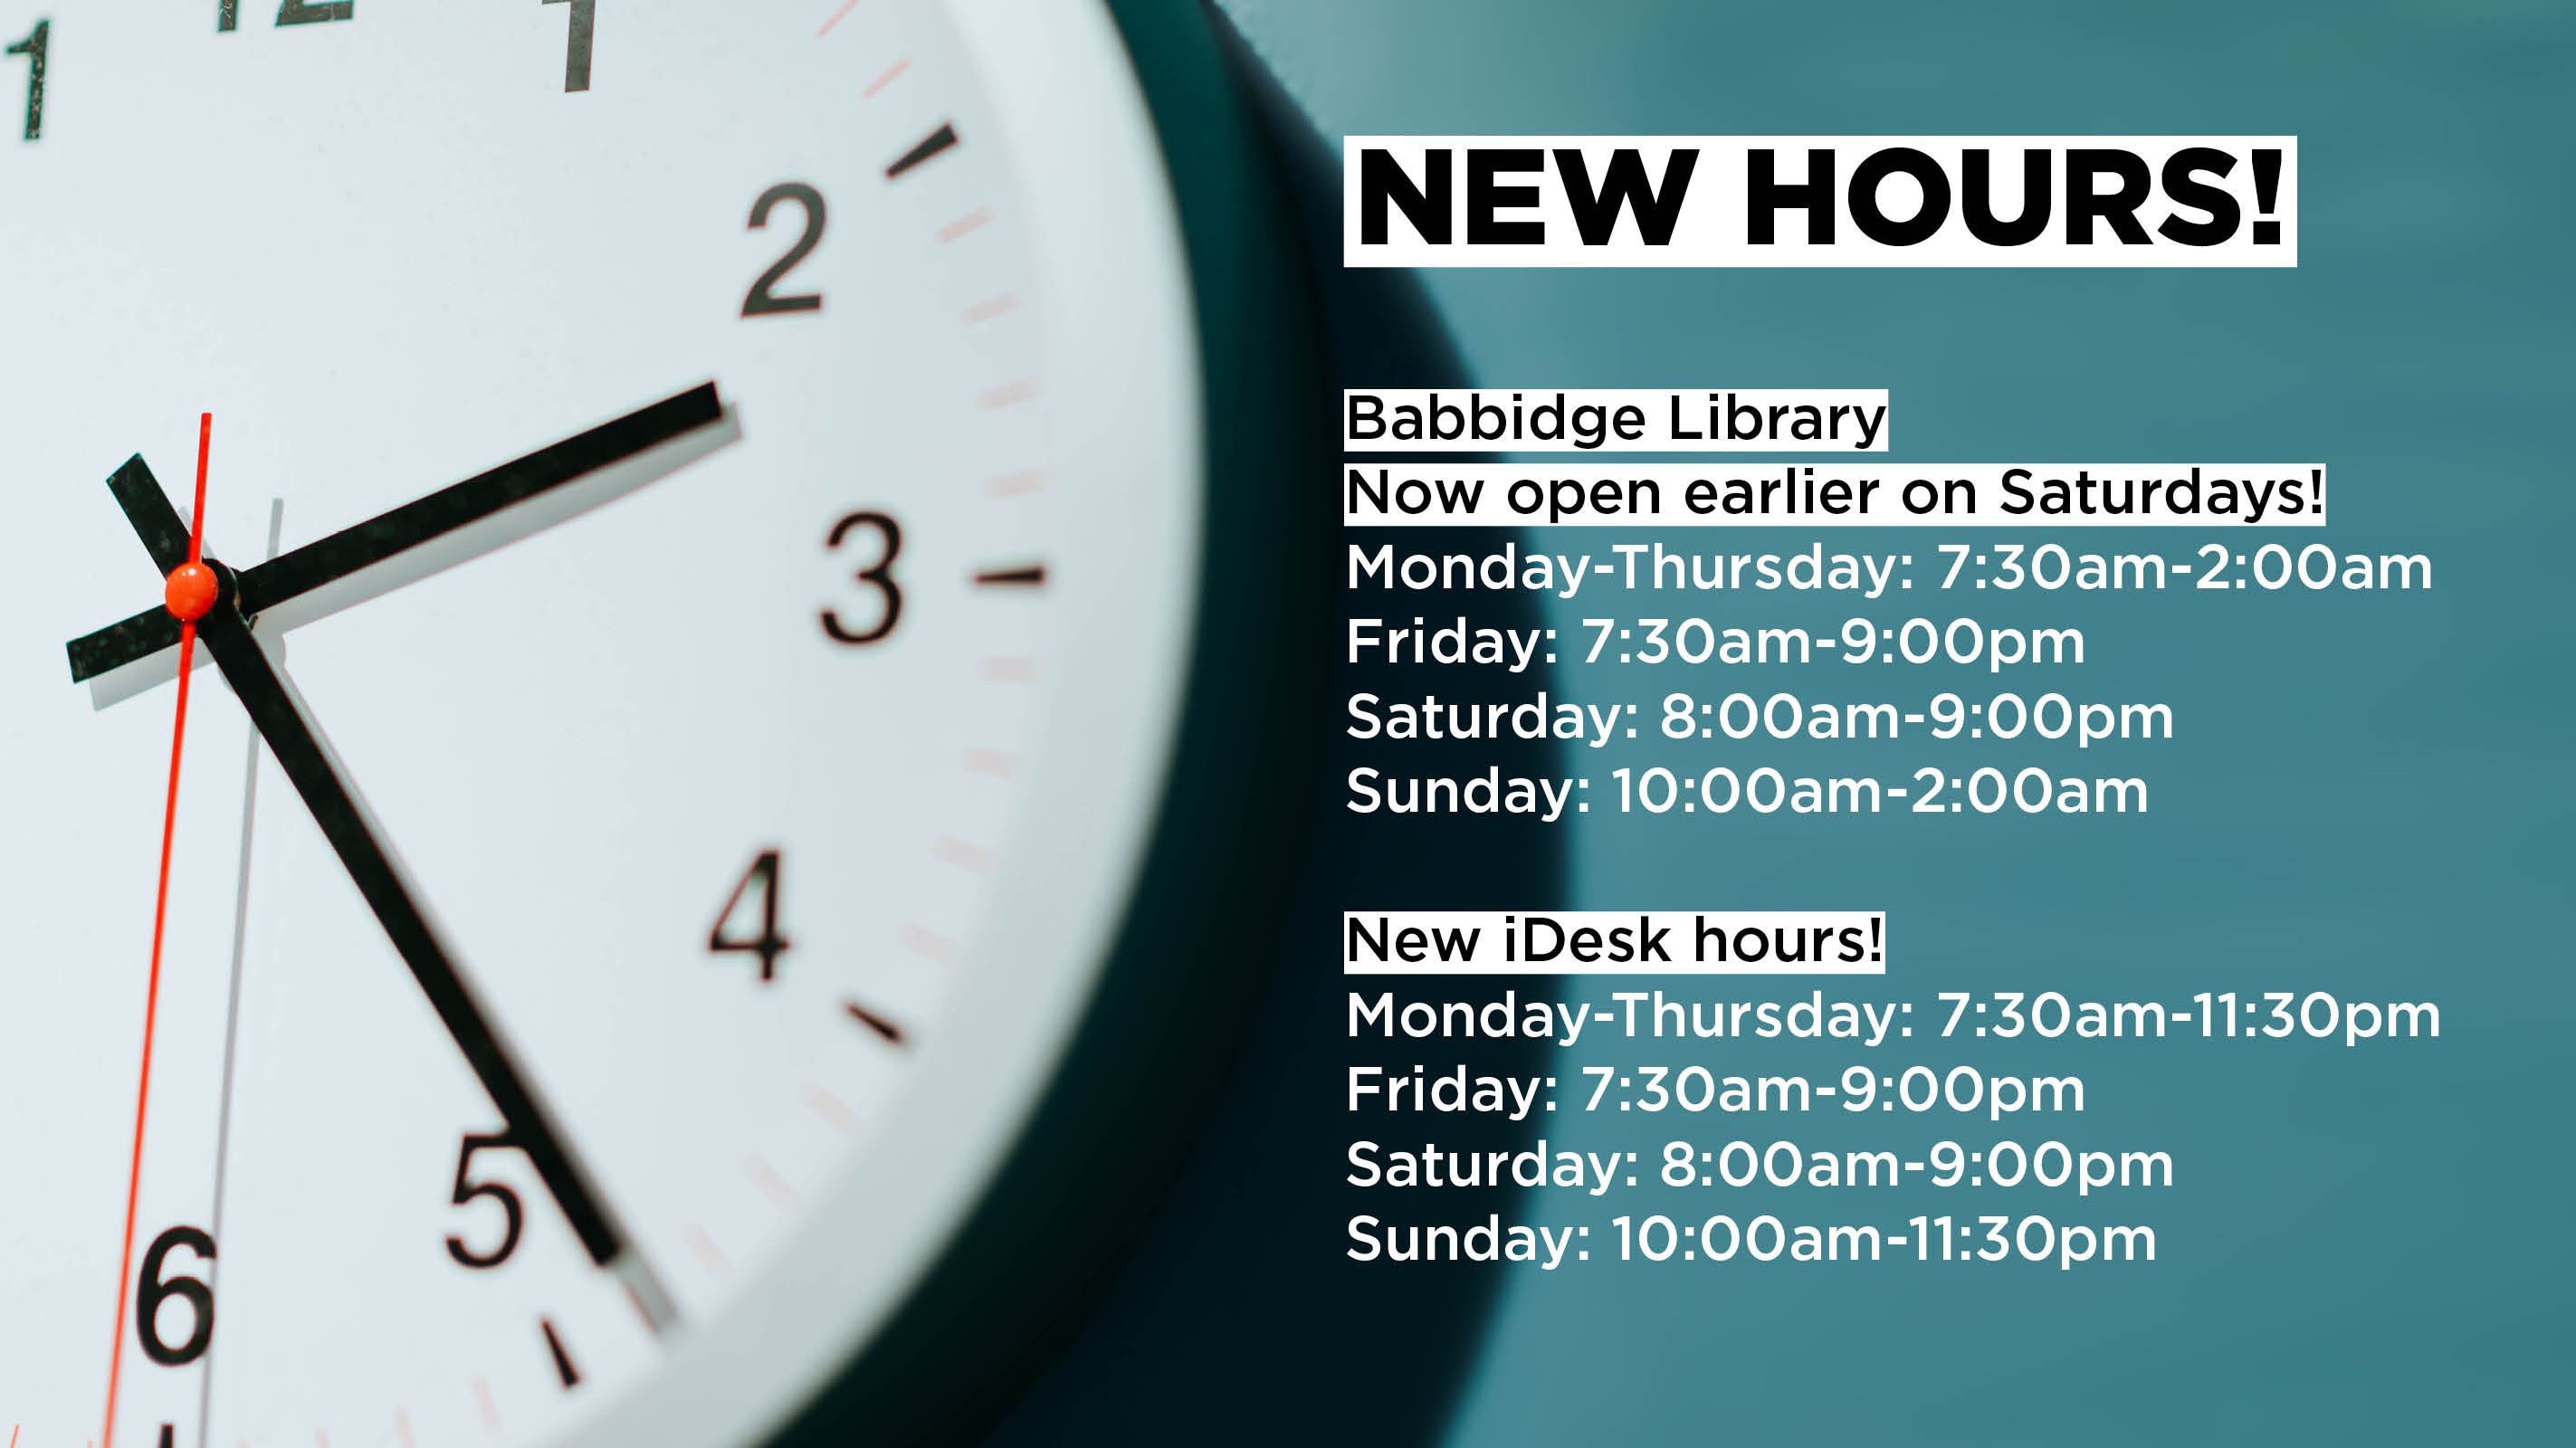 New Hours! Babbidge Library Now open earlier on Saturdays! Monday-Thursday: 7:30am-2:00am Friday: 7:30am-9:00pm Saturday: 8:00am-9:00pm Sunday: 10:00am-2:00am New iDesk hours! Monday-Thursday: 7:30am-11:30pm Friday: 7:30am-9:00pm Saturday: 8:00am-9:00pm Sunday: 10:00am-11:30pm